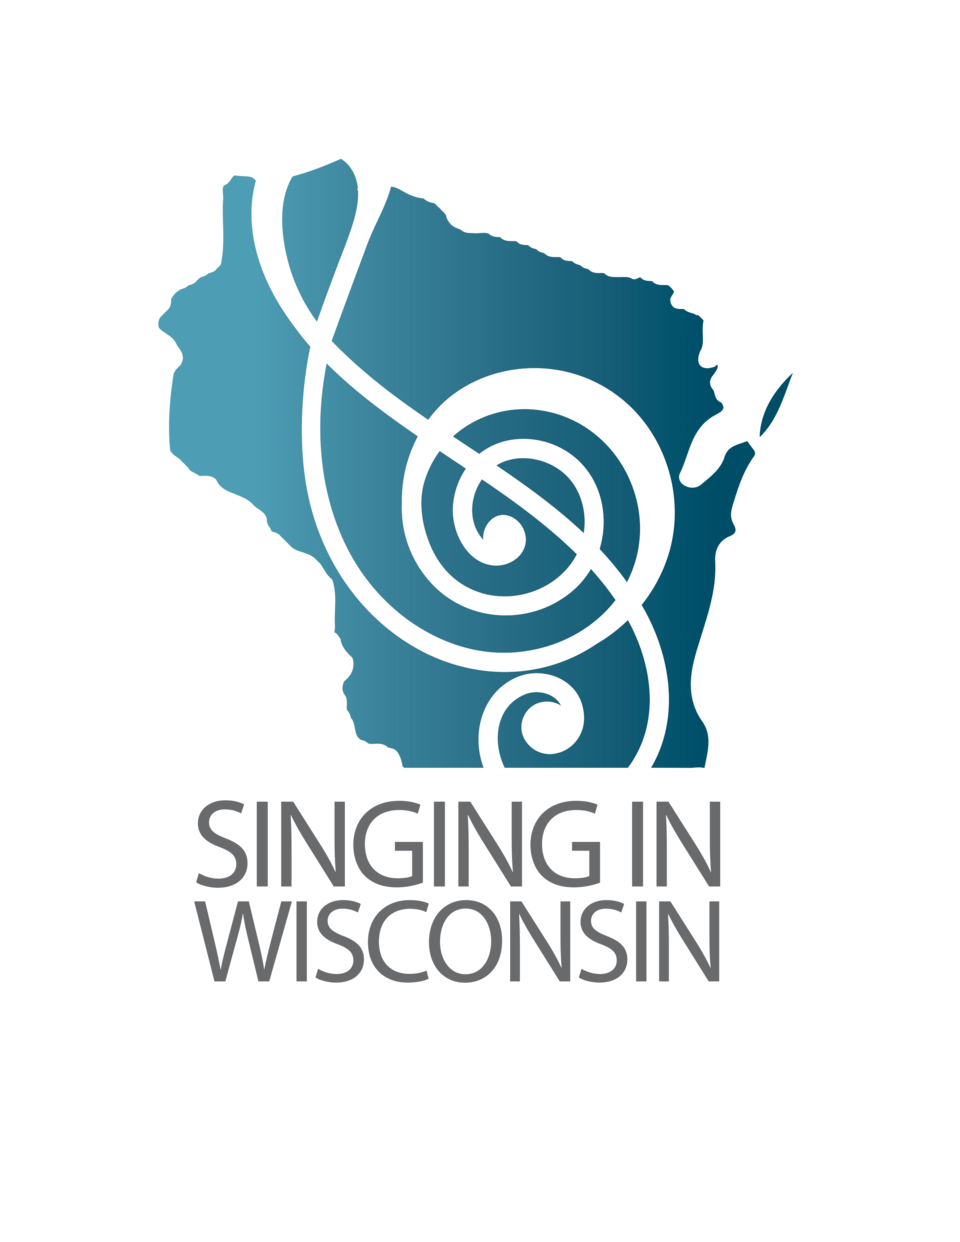 Singing. In wi wisconsin choral